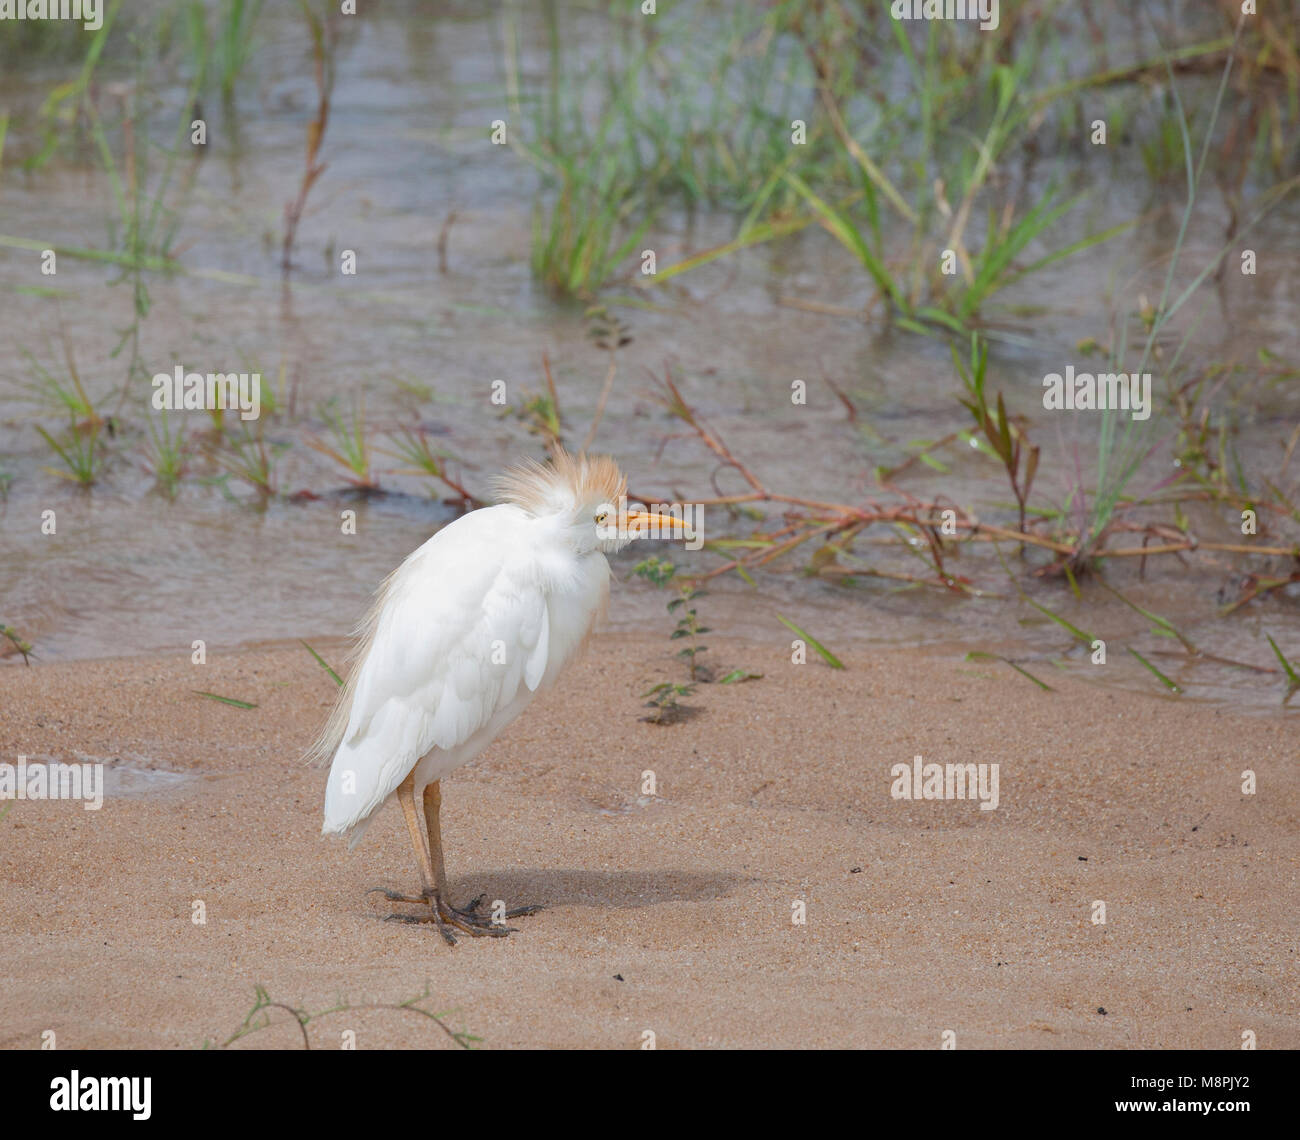 Cattle Egret, Bubulcus ibis, in Kruger National Park, South Africa - Stock Image